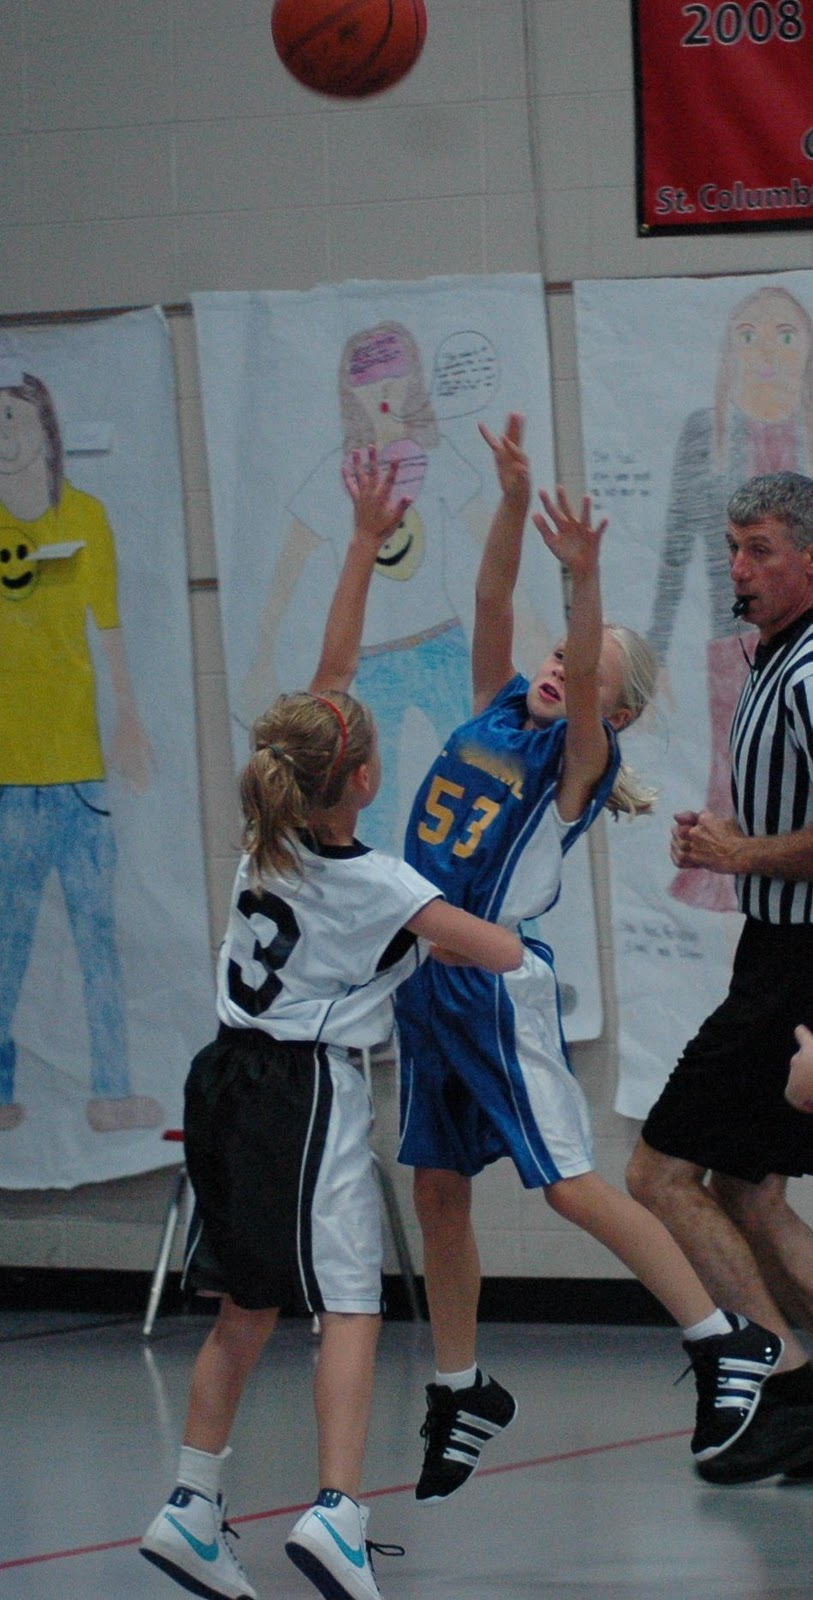 Youth Basketball: Teammates Facing Teammates